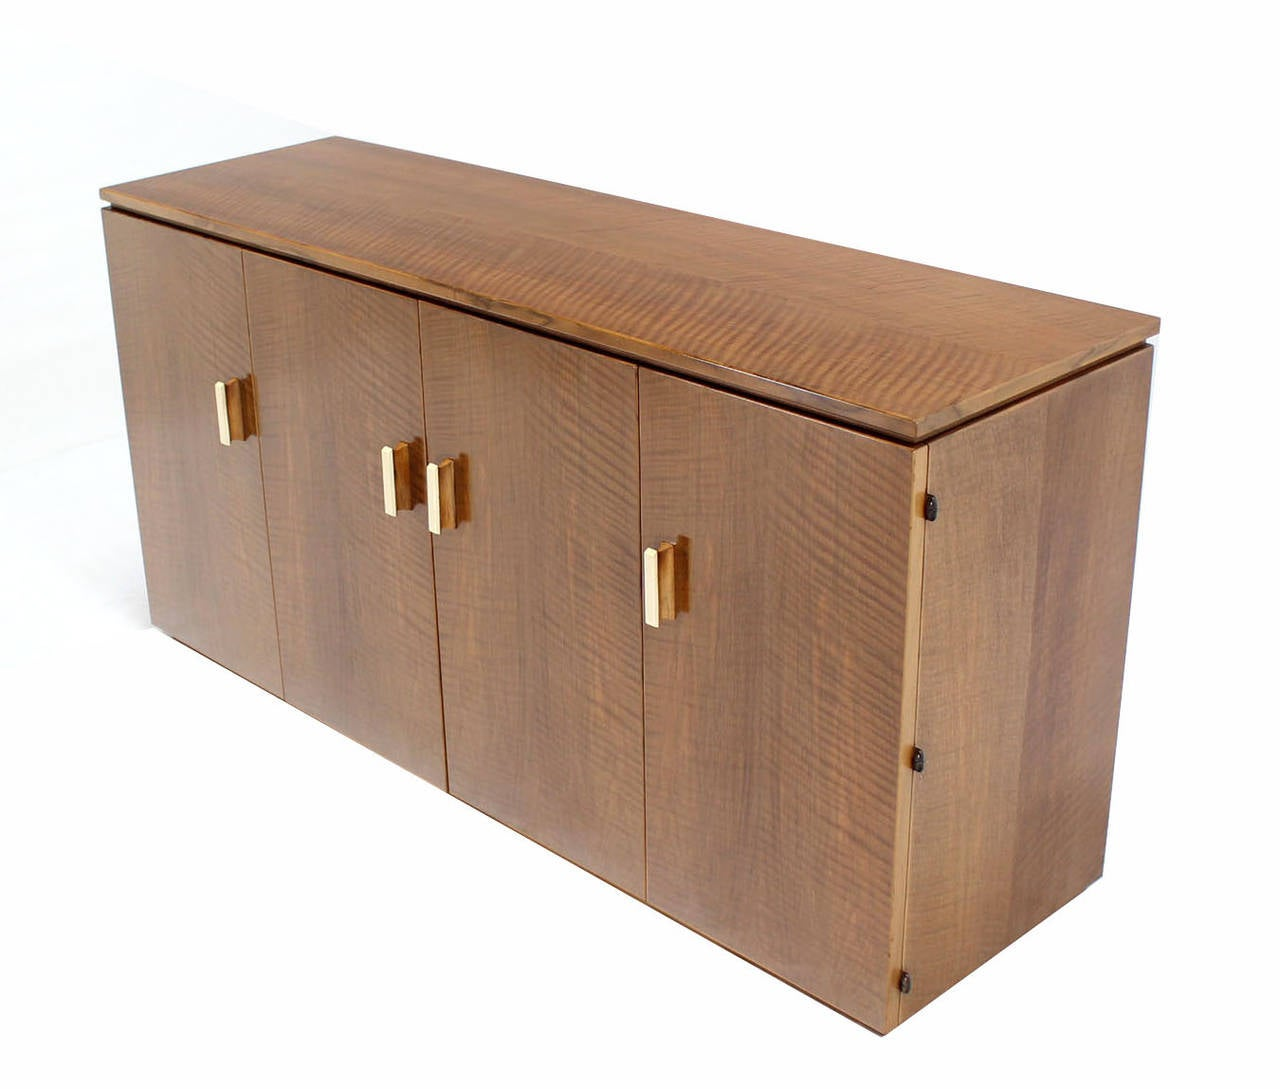 Mid century modern folding doors long dresser credenza cabinet in mint condition.